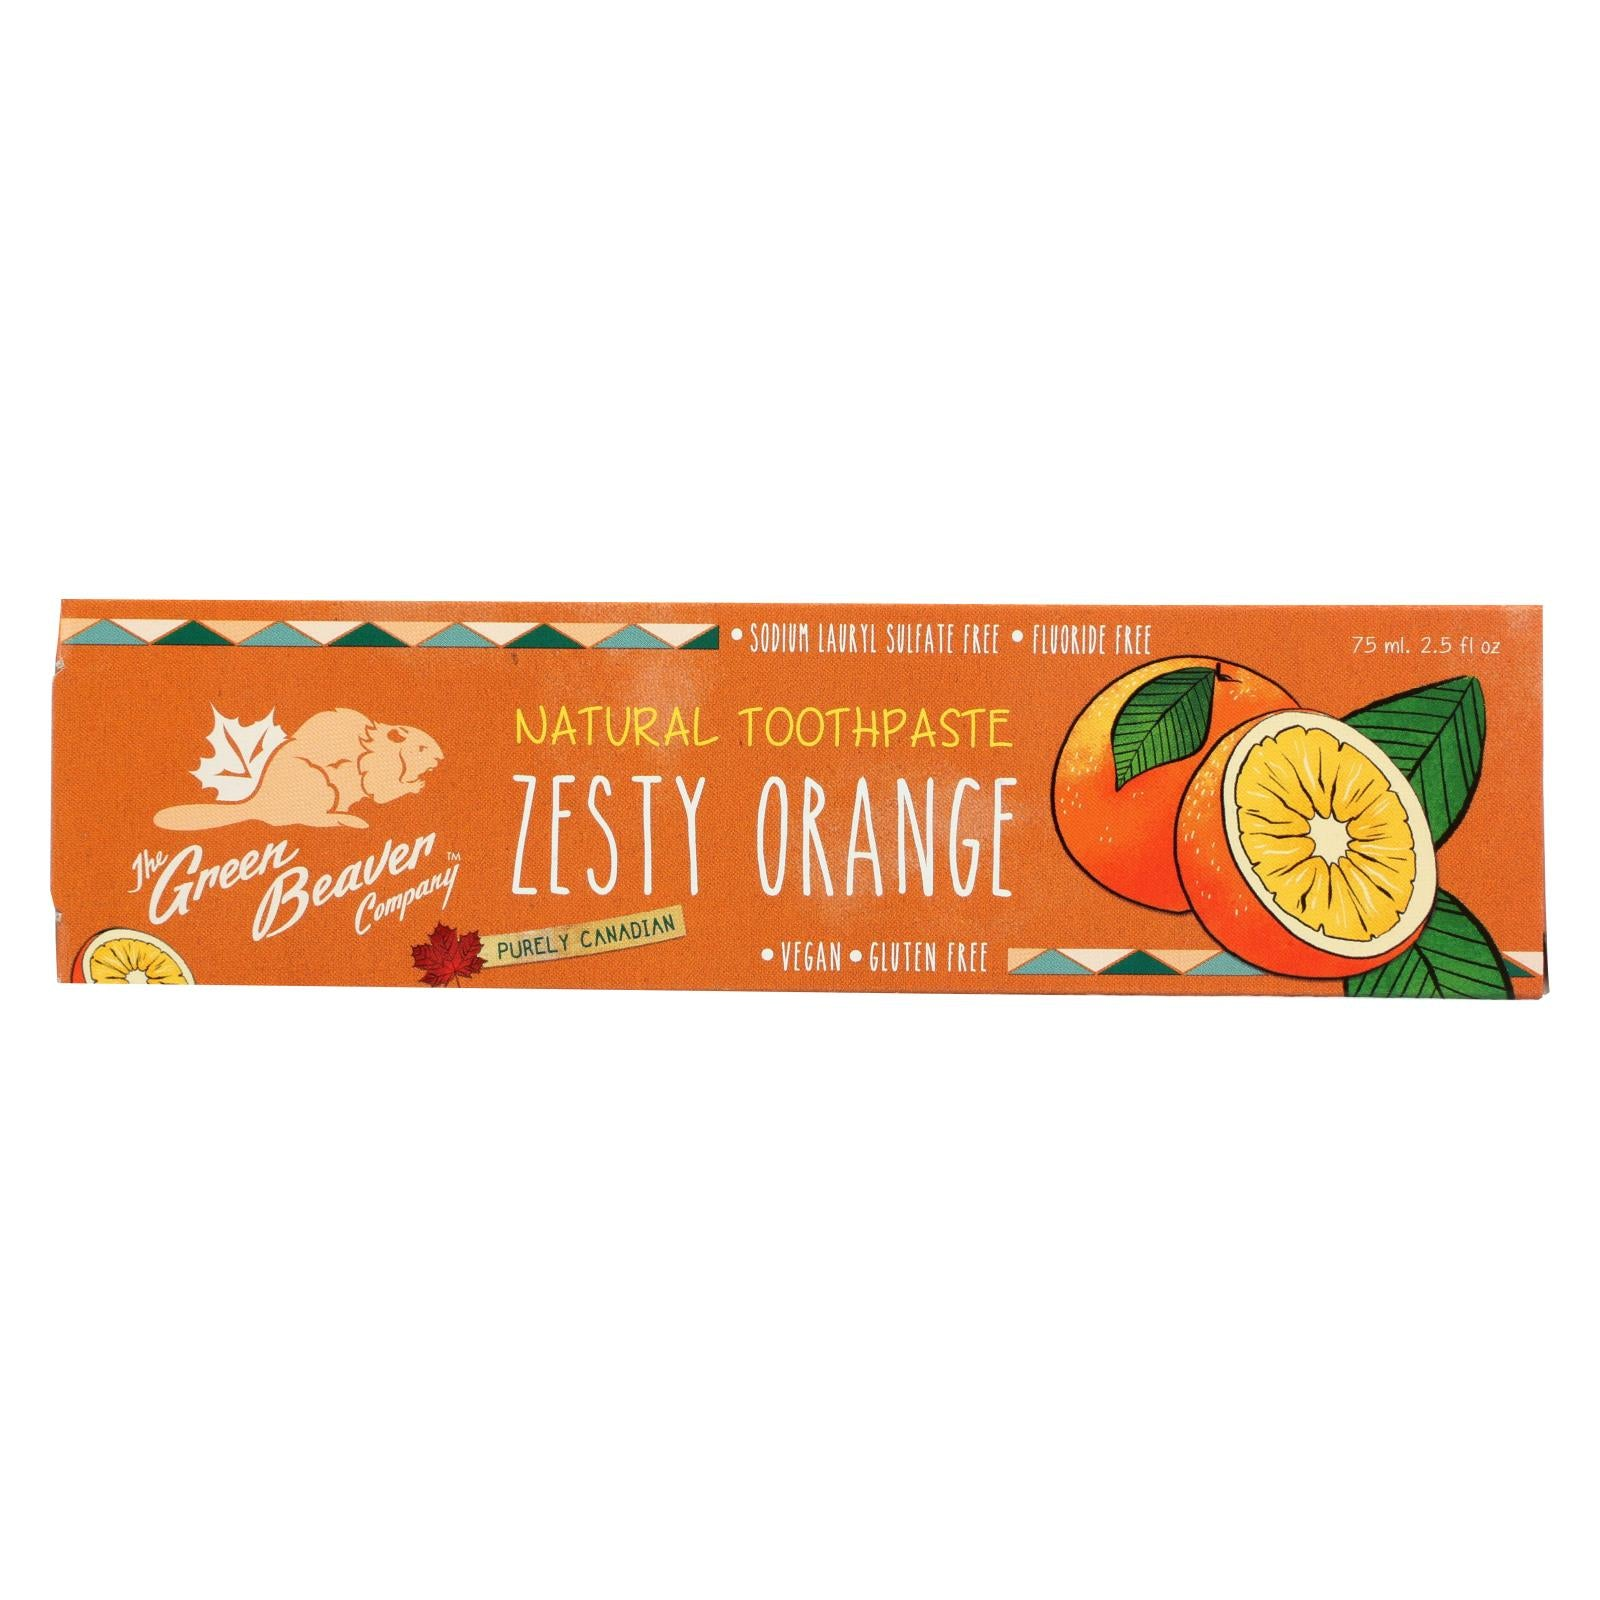 Buy Green Beaver,The Toothpaste - Zesty Orange Toothpaste - Case of 1 - 2.5 fl oz. - Oral Care from Veroeco.com